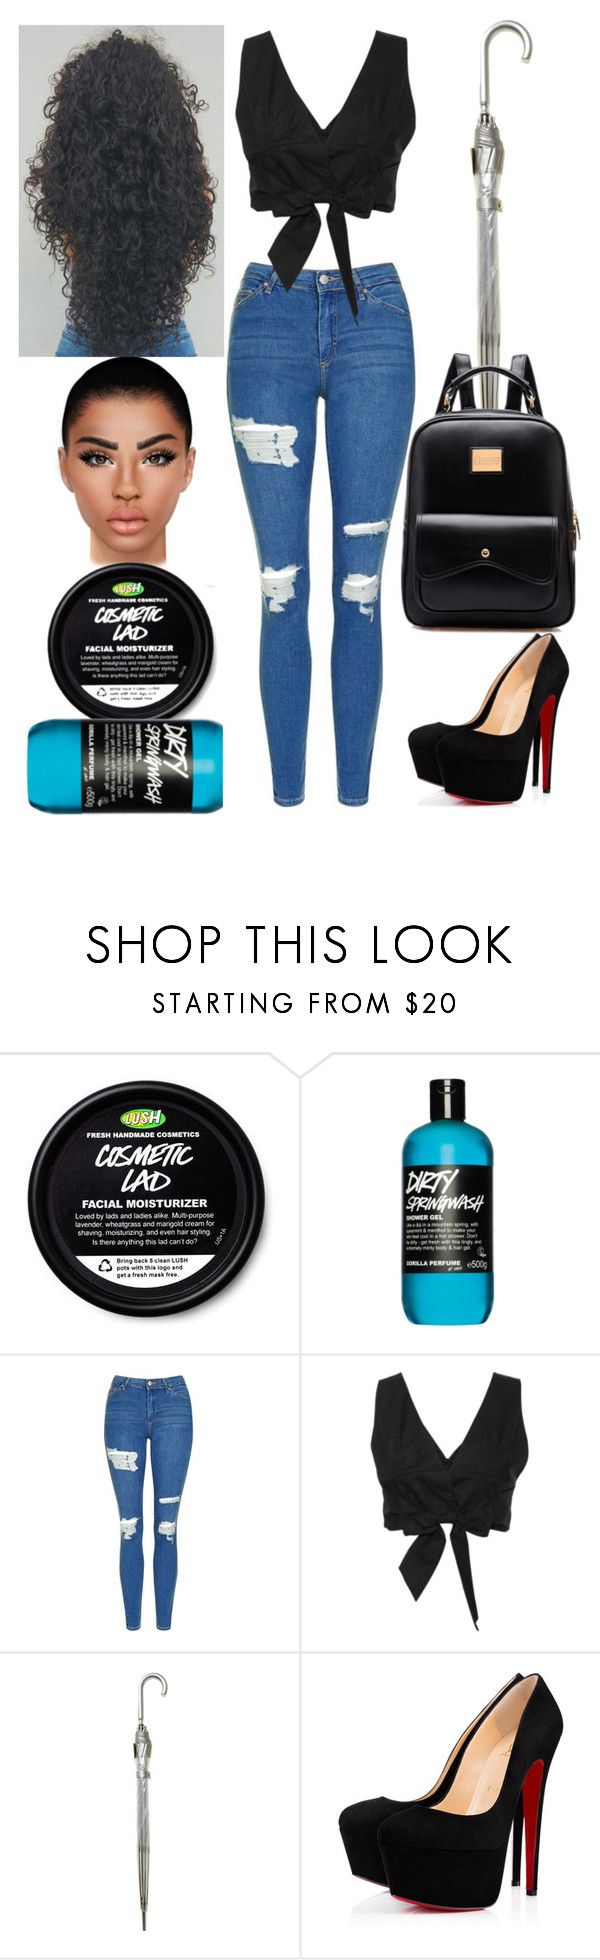 """Nottingham: October 7"" by allison-syko ❤ liked on Polyvore featuring Topshop, Fulton and Christian Louboutin"